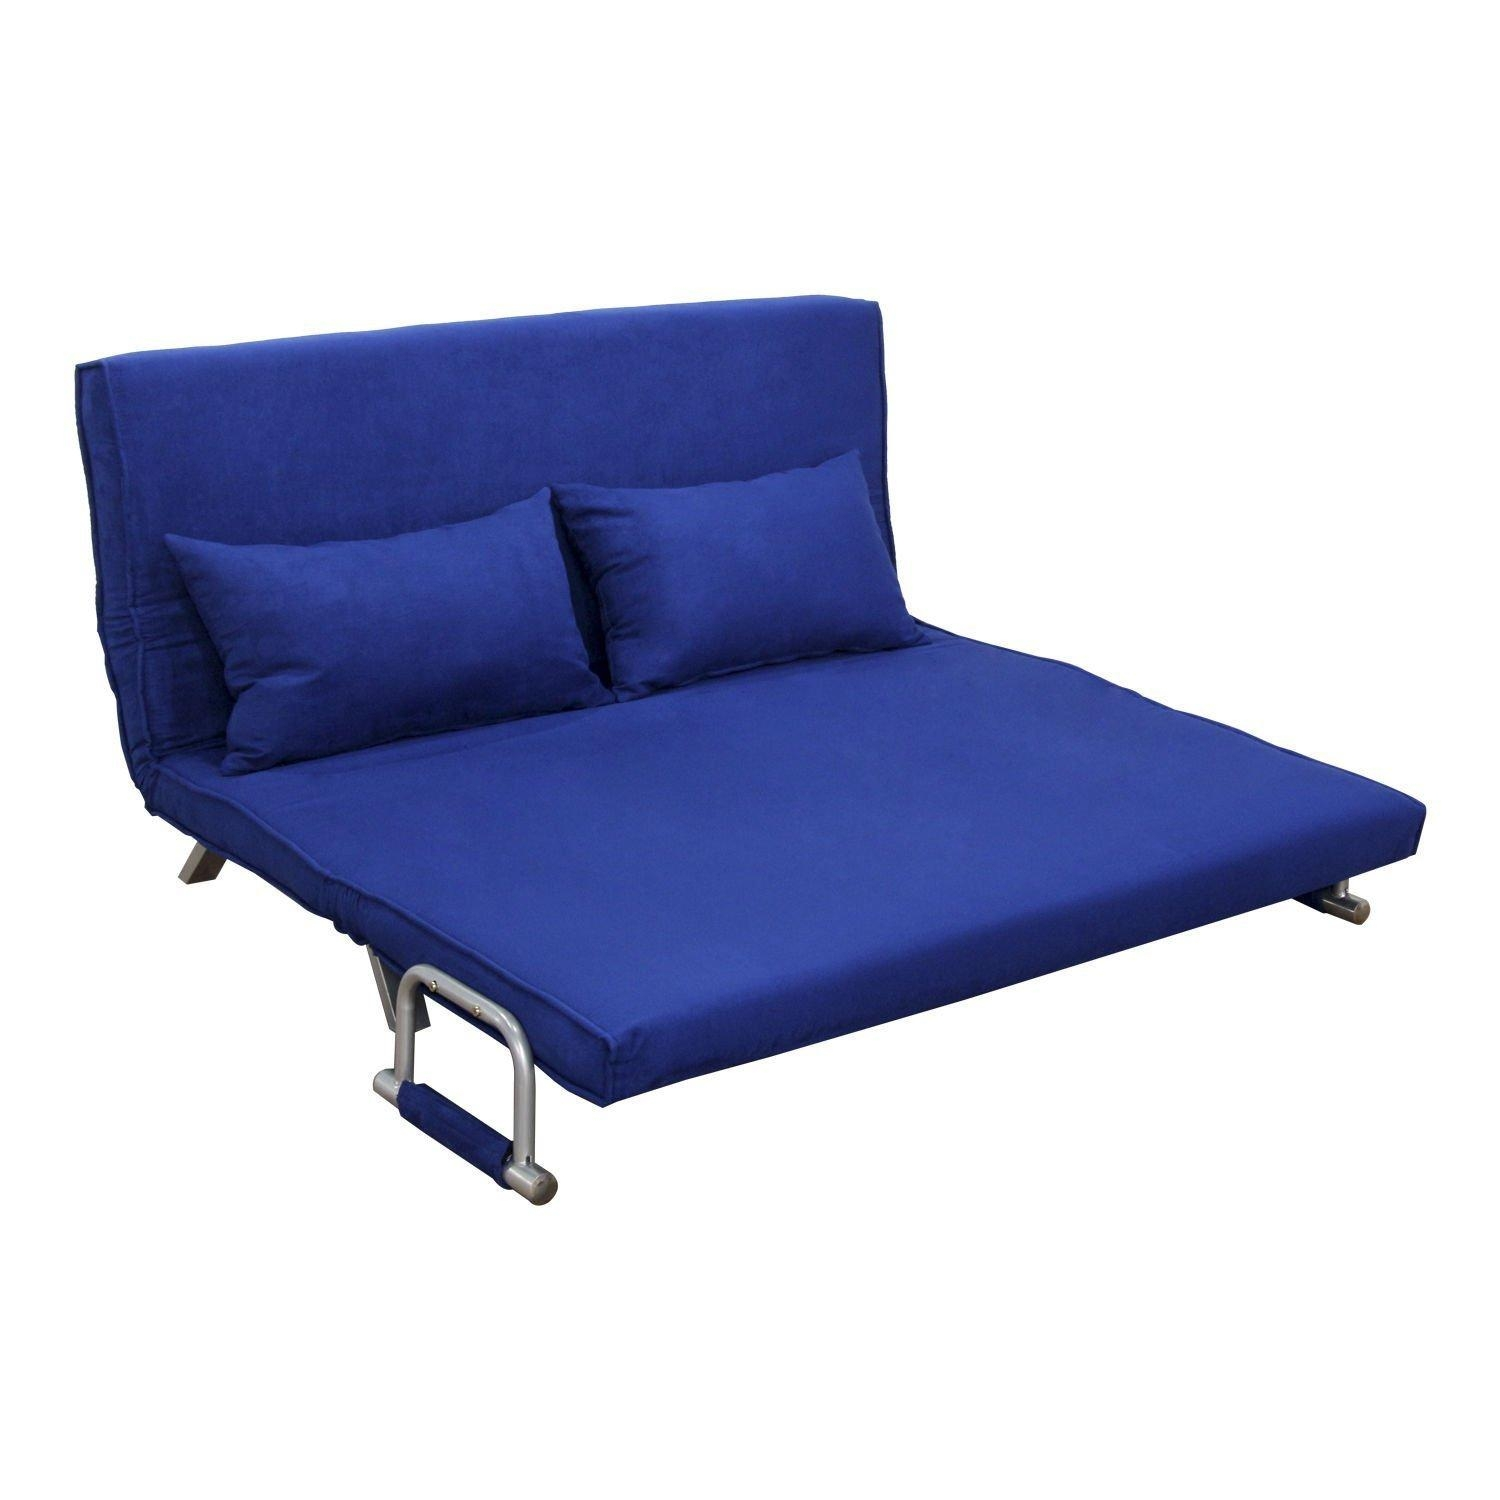 20 Collection Of Sofa Bed Chairs Sofa Ideas